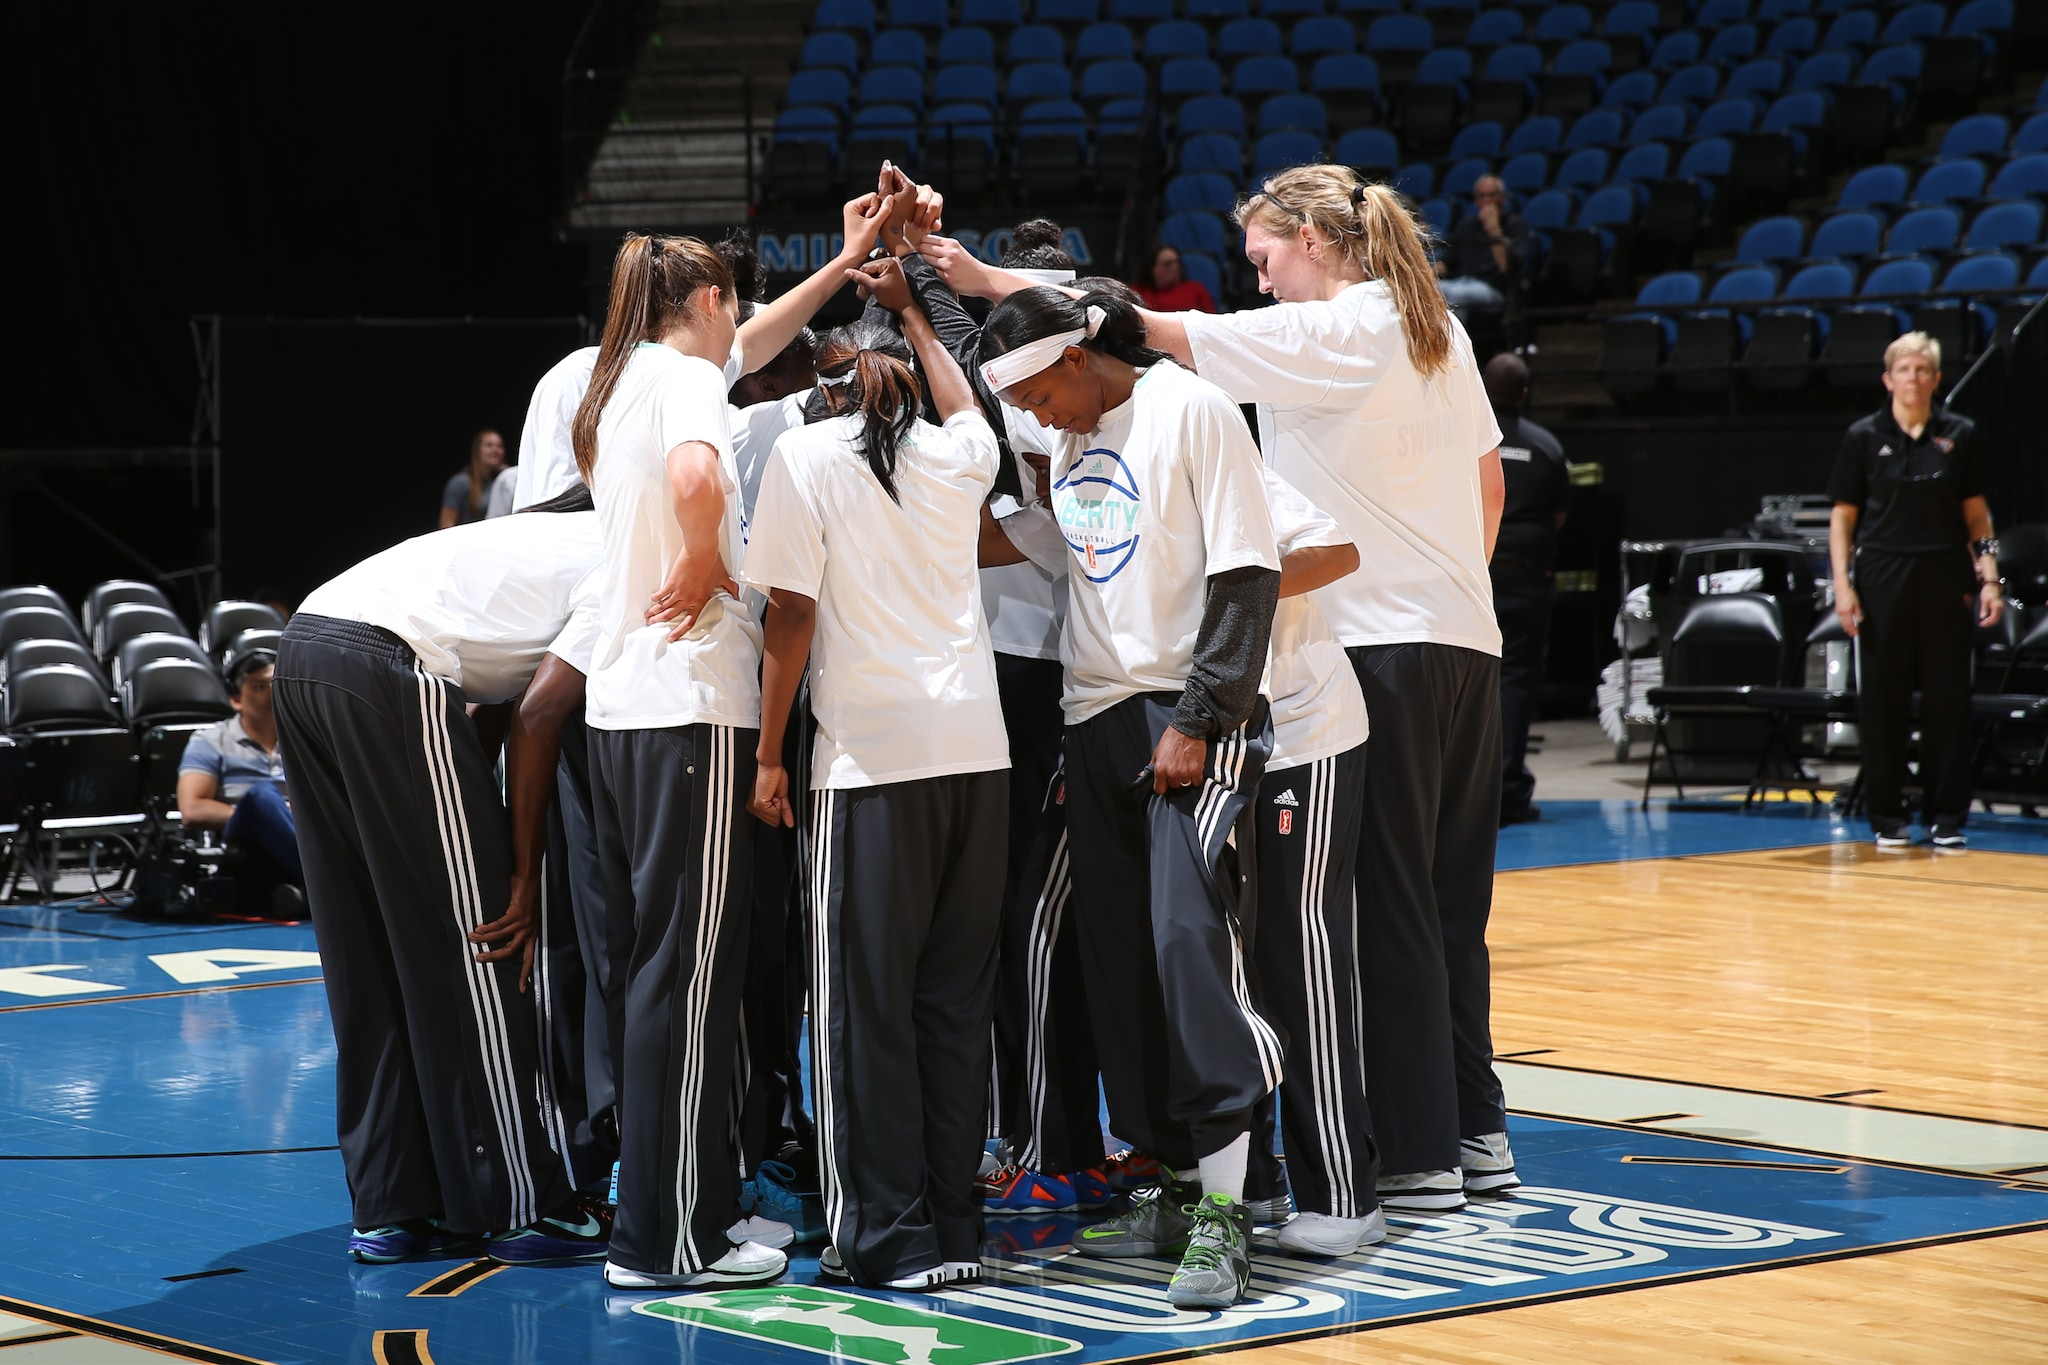 MINNEAPOLIS, MN - JUNE 1:  The New York Liberty huddle before the WNBA Preseason game against the Minnesota Lynx on June 1, 2015 at Target Center in Minneapolis, Minnesota. NOTE TO USER: User expressly acknowledges and agrees that, by downloading and or using this Photograph, user is consenting to the terms and conditions of the Getty Images License Agreement. Mandatory Copyright Notice: Copyright 2015 NBAE (Photo by David Sherman/NBAE via Getty Images)